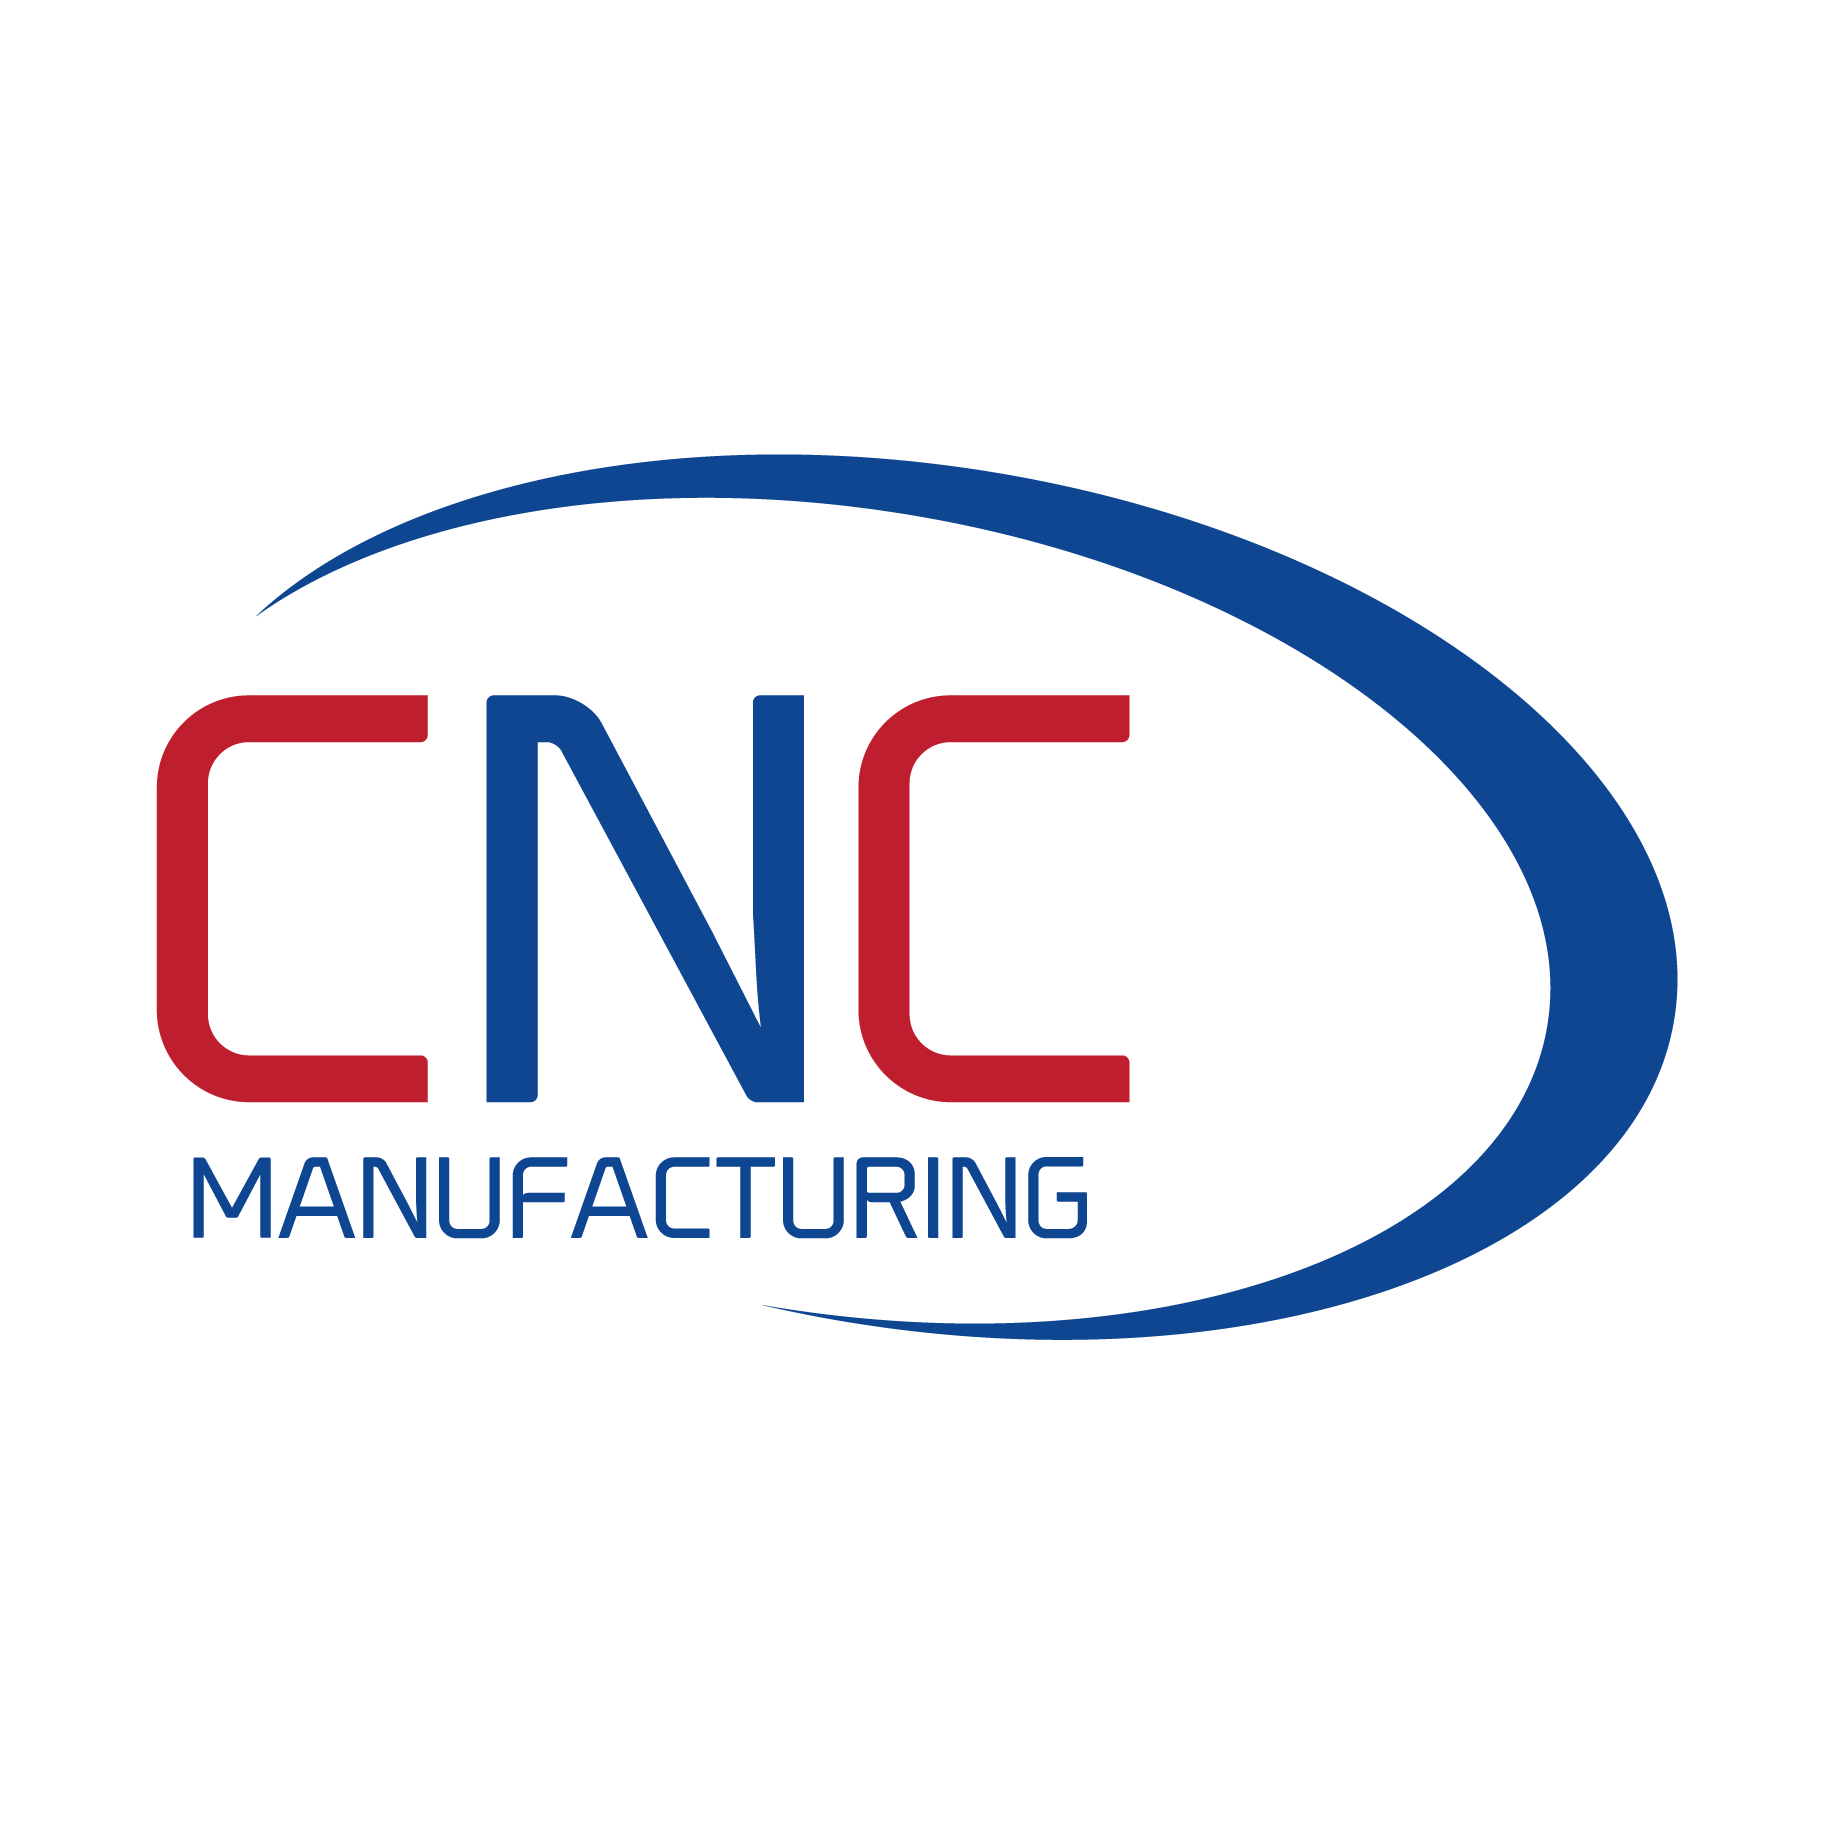 CNC Manufacturing | Specializing In The Precision Machining of Small ...